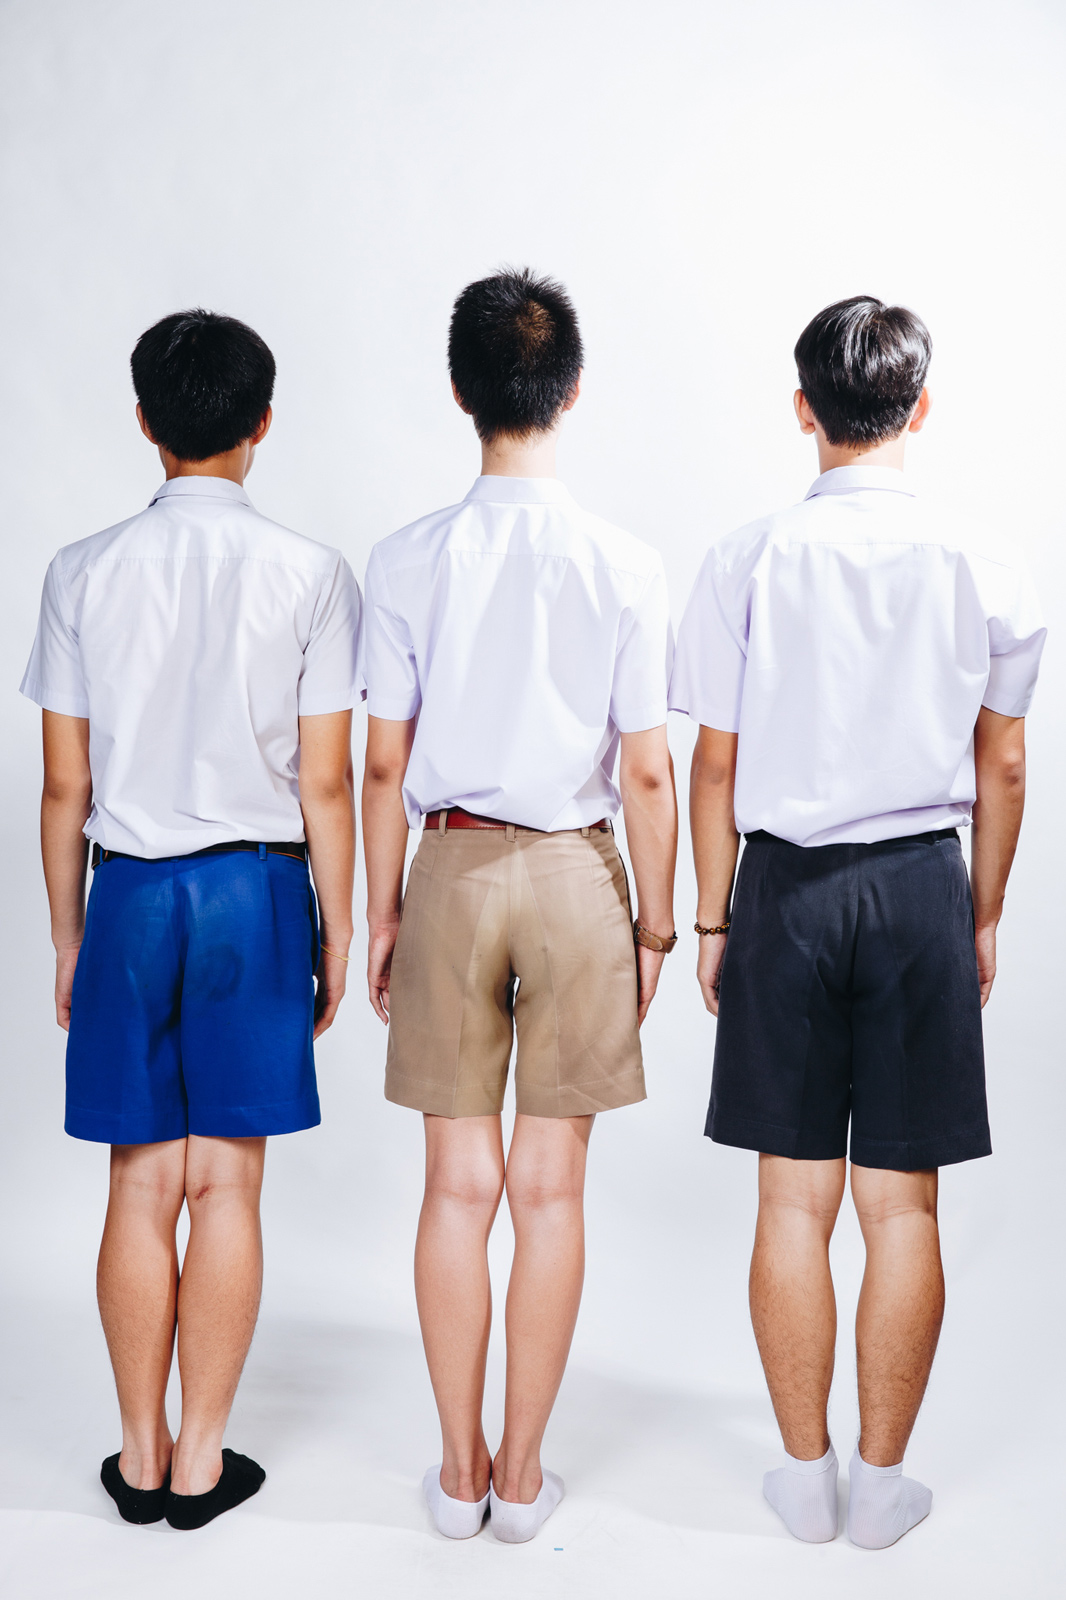 For Thailand's queer students, self-expression is an act of protest